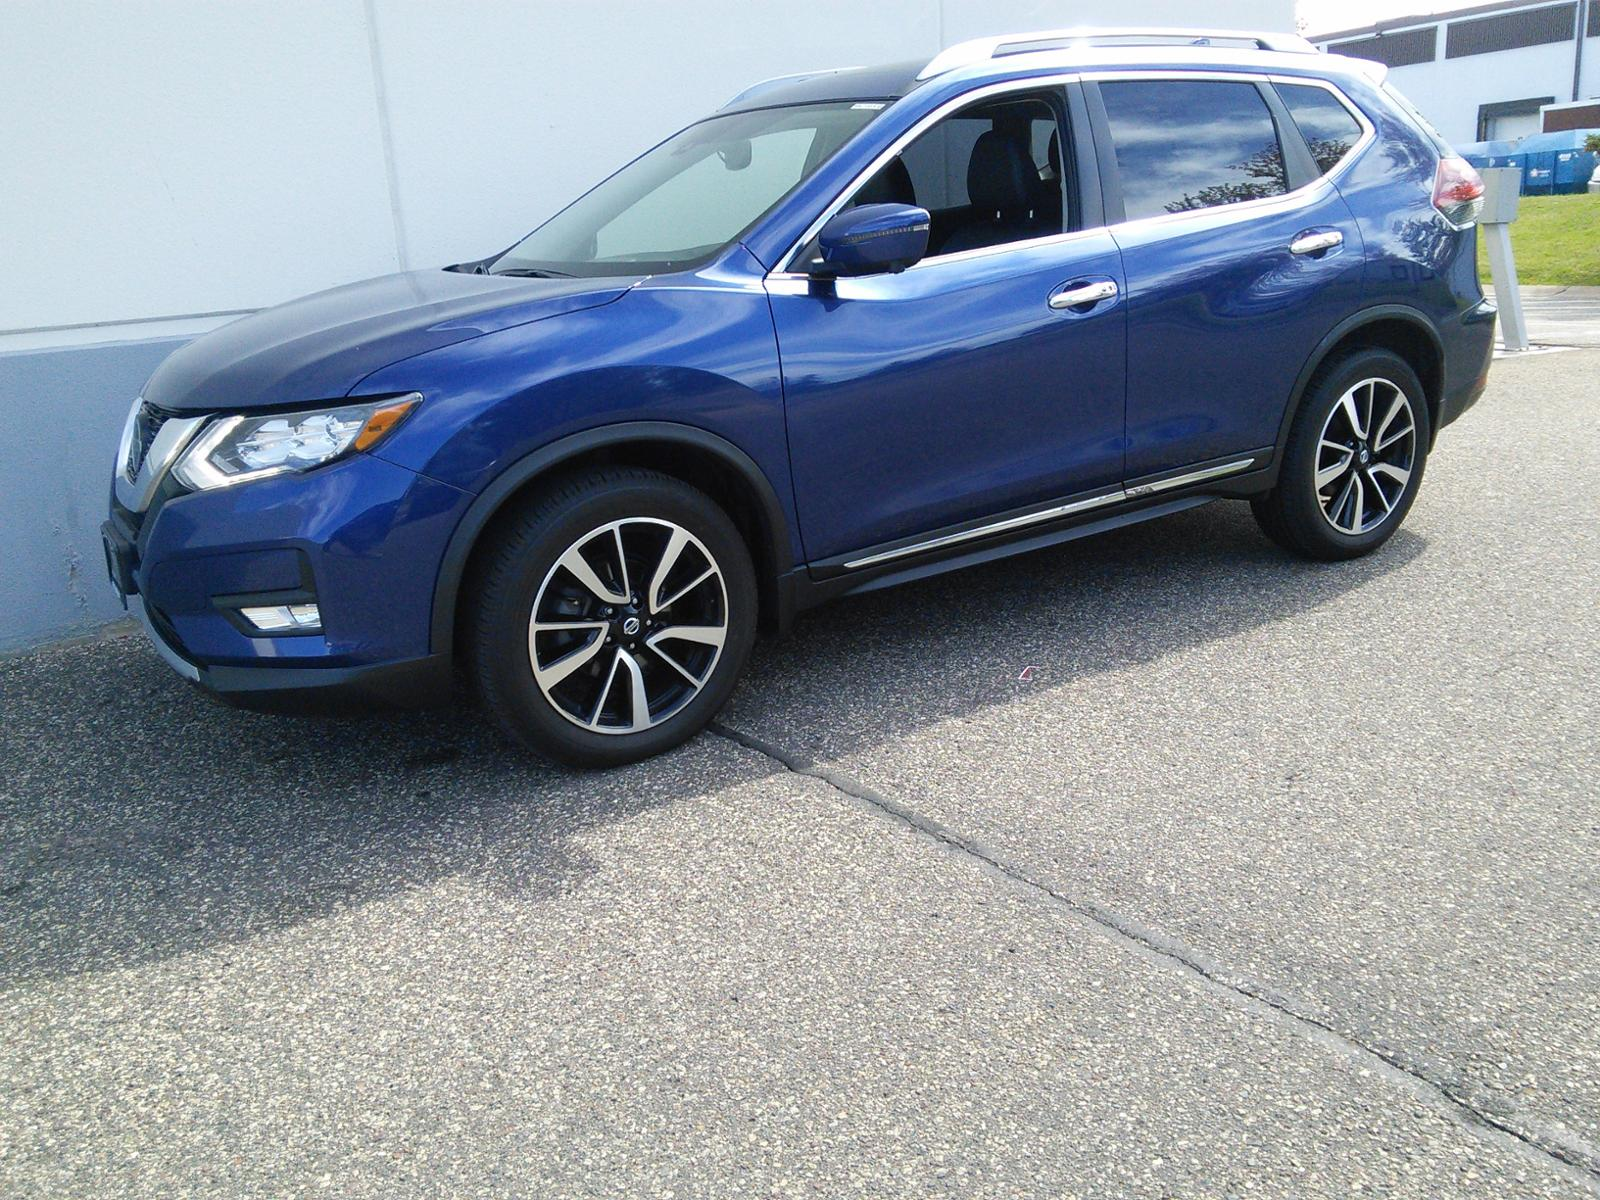 Used 2018 Nissan Rogue SL with VIN JN8AT2MV5JW342527 for sale in Maplewood, Minnesota